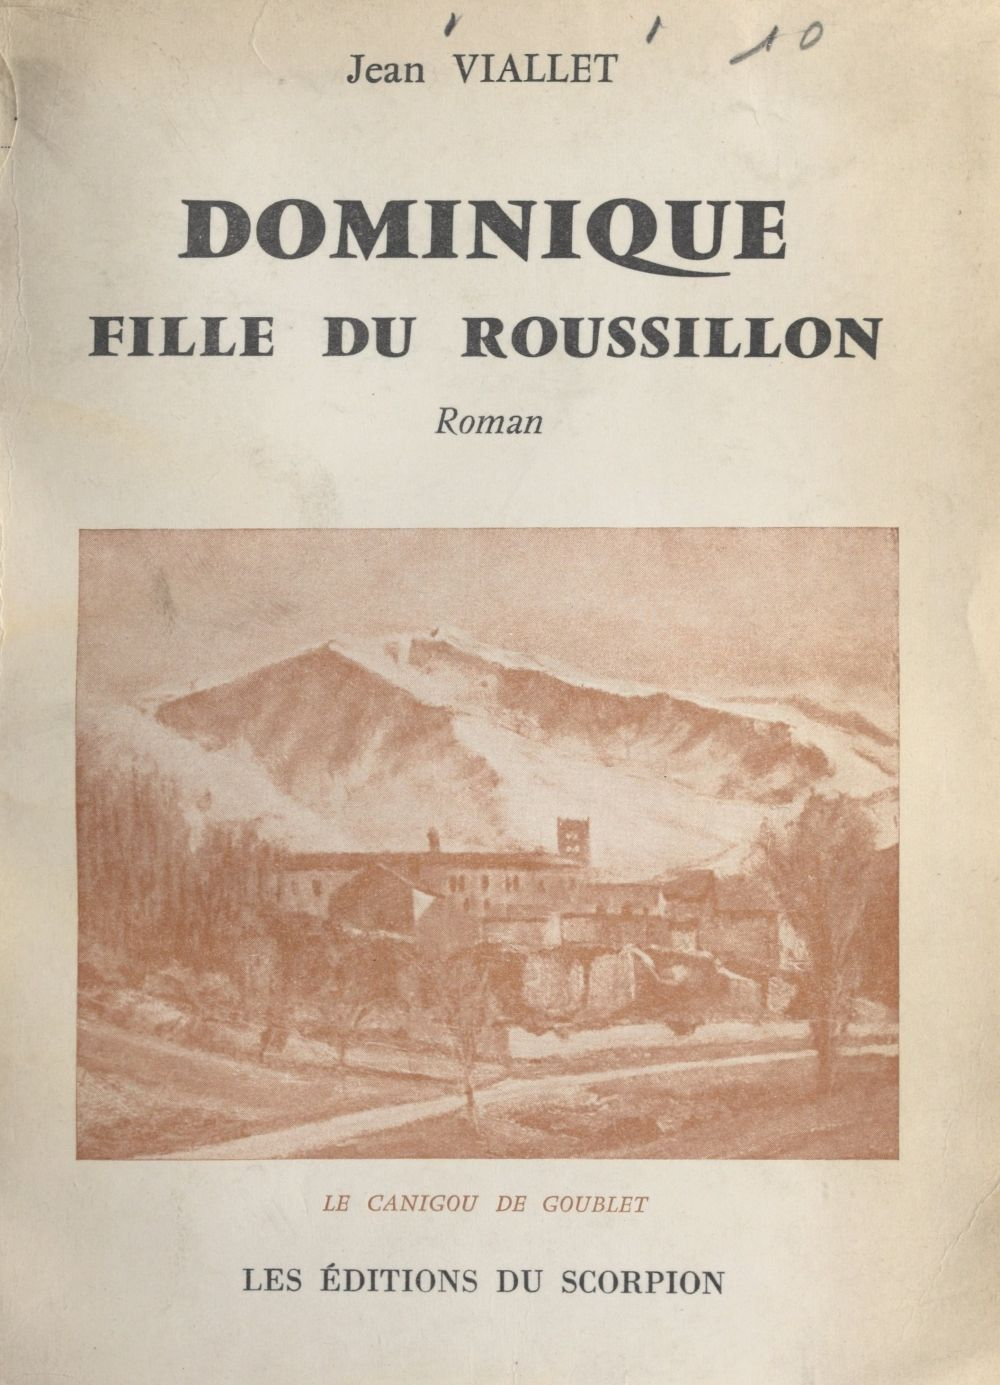 Dominique, fille du Roussillon